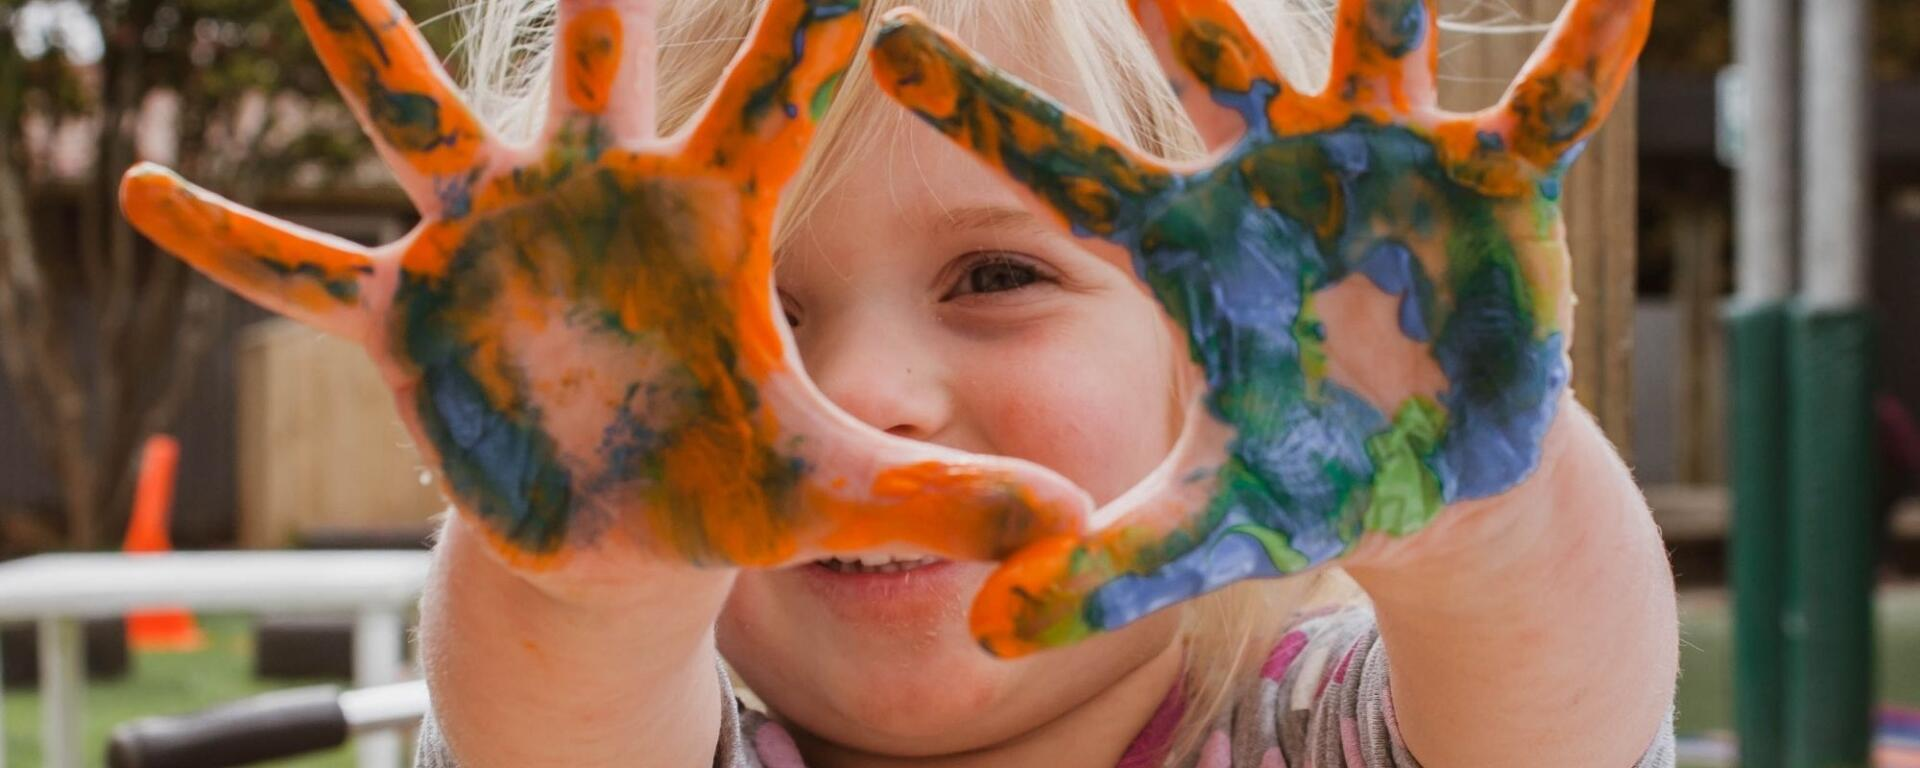 Toddler With Hands Covered In Rainbow Paint